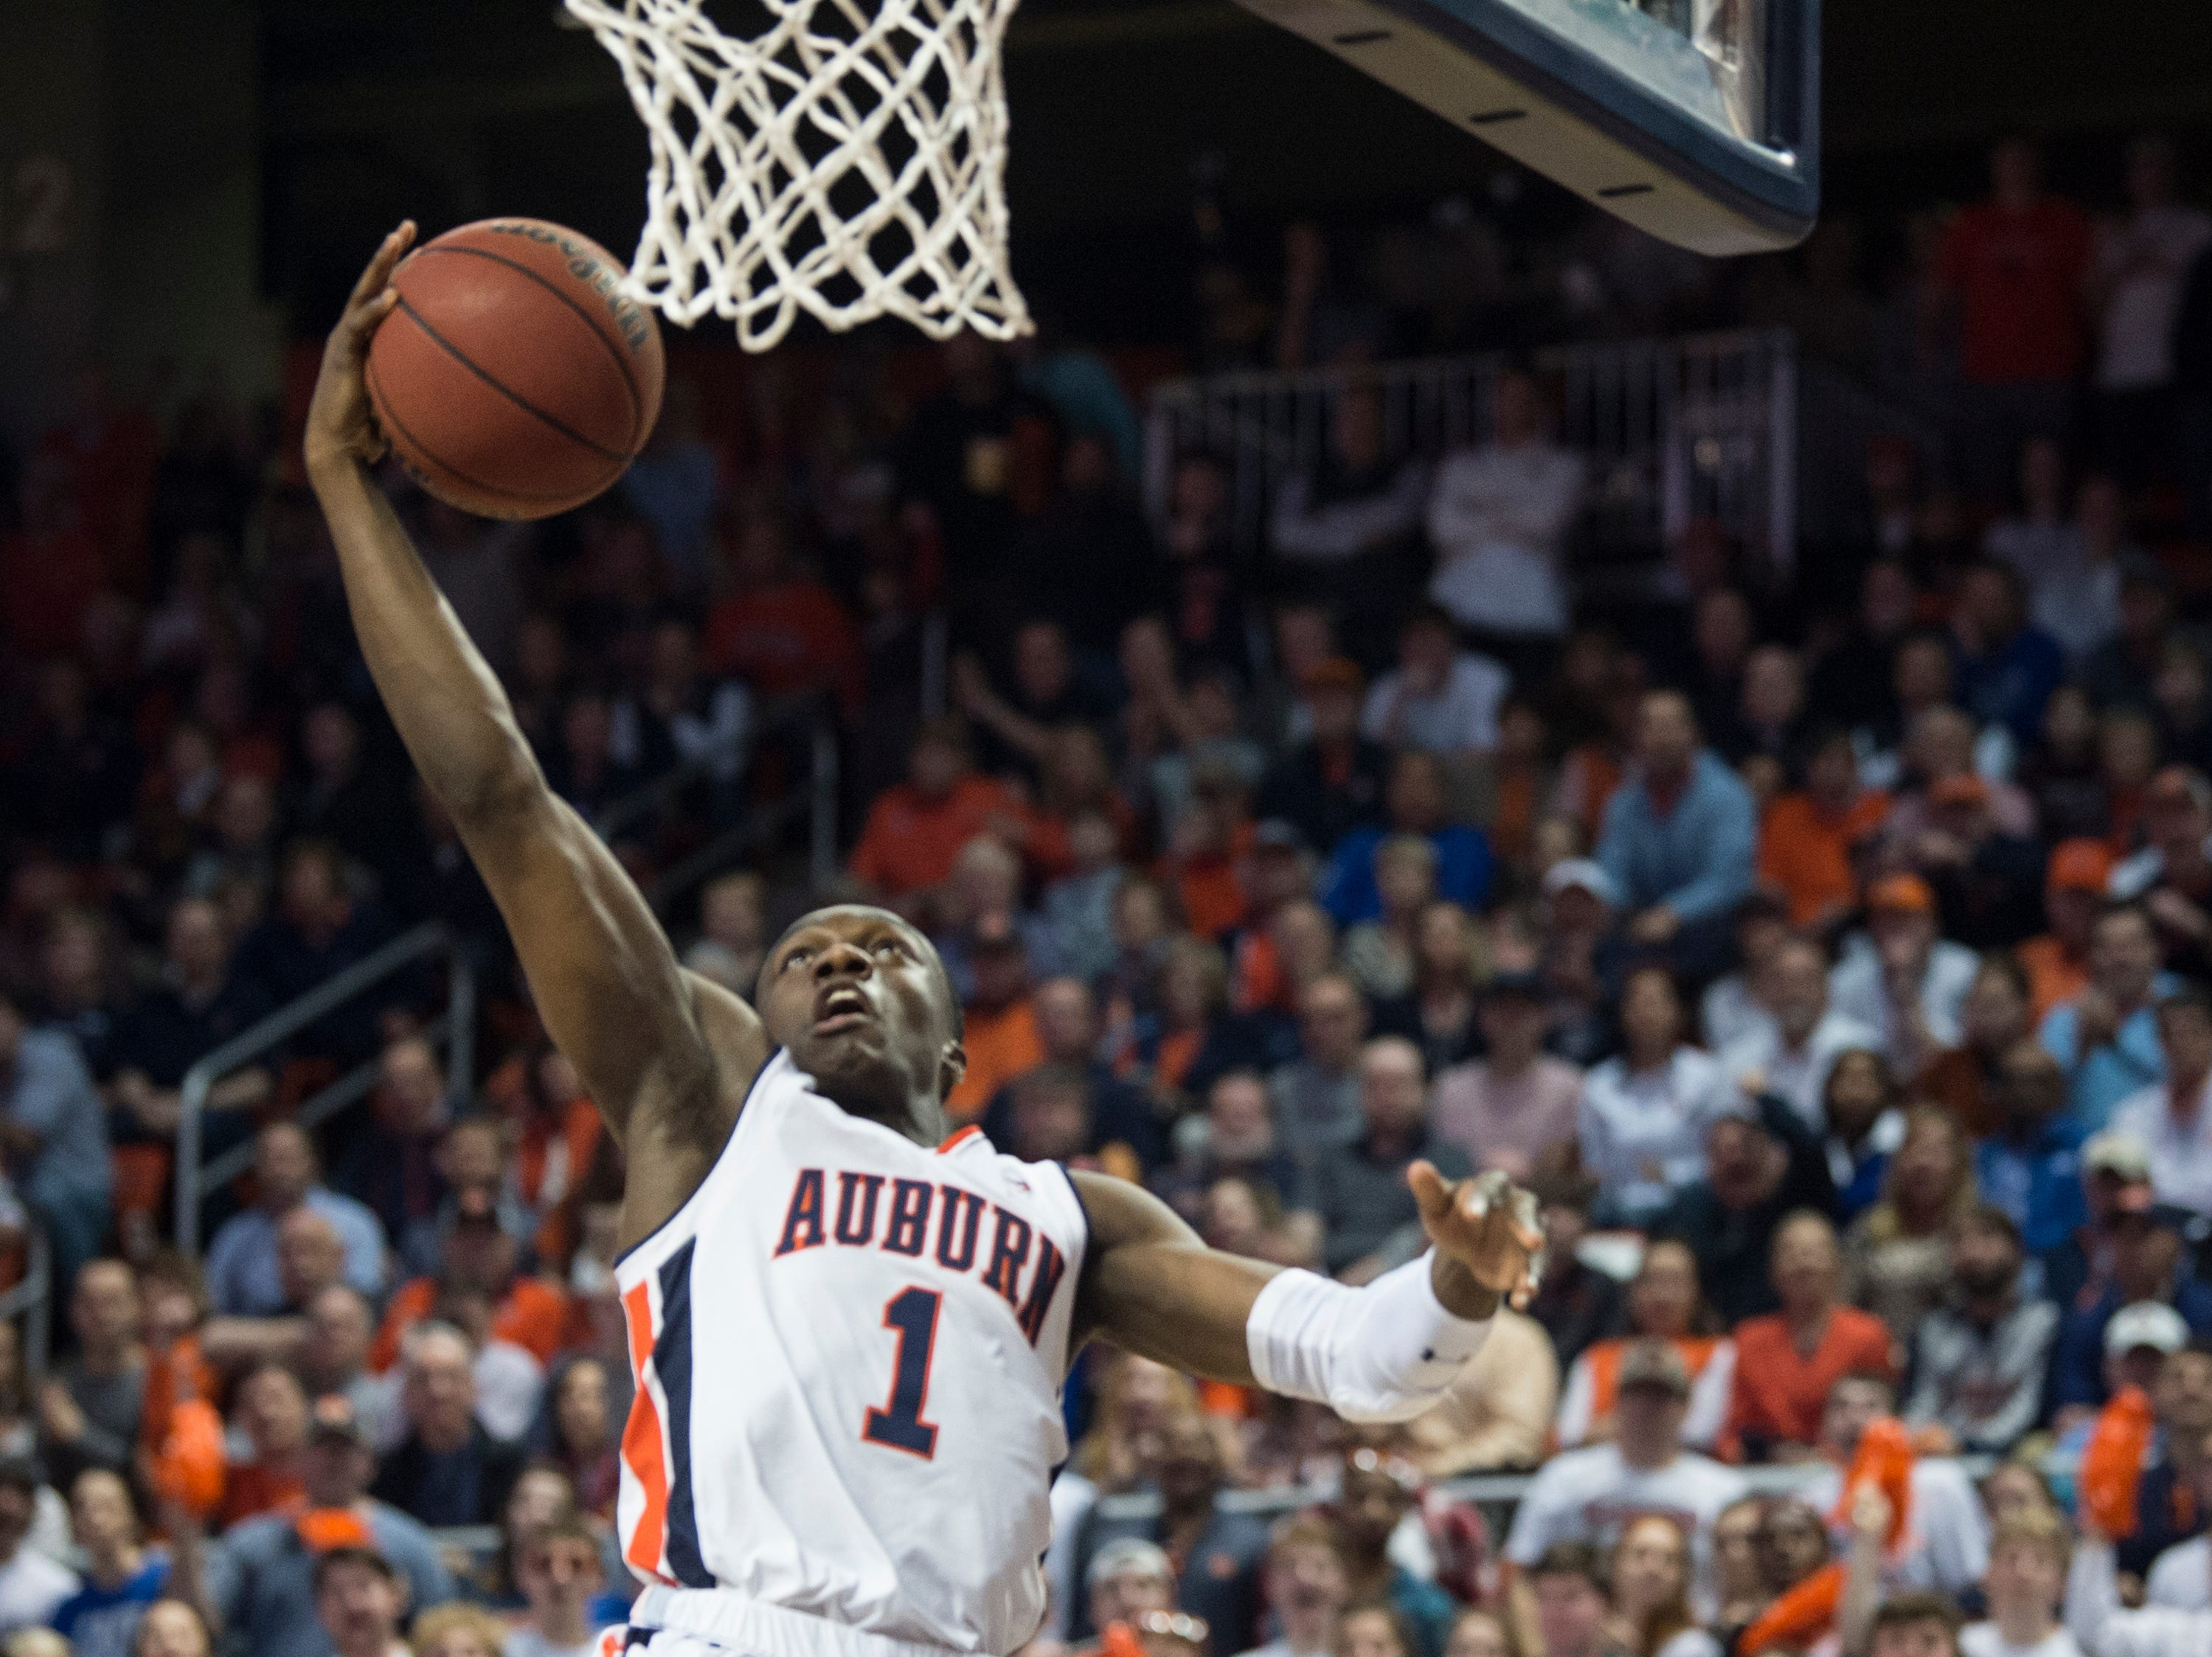 Auburn guard Jared Harper (1) goes up for a layup at Auburn Arena in Auburn, Ala., on Saturday, Jan. 19, 2019. Kentucky leads Auburn 35-27 at halftime.